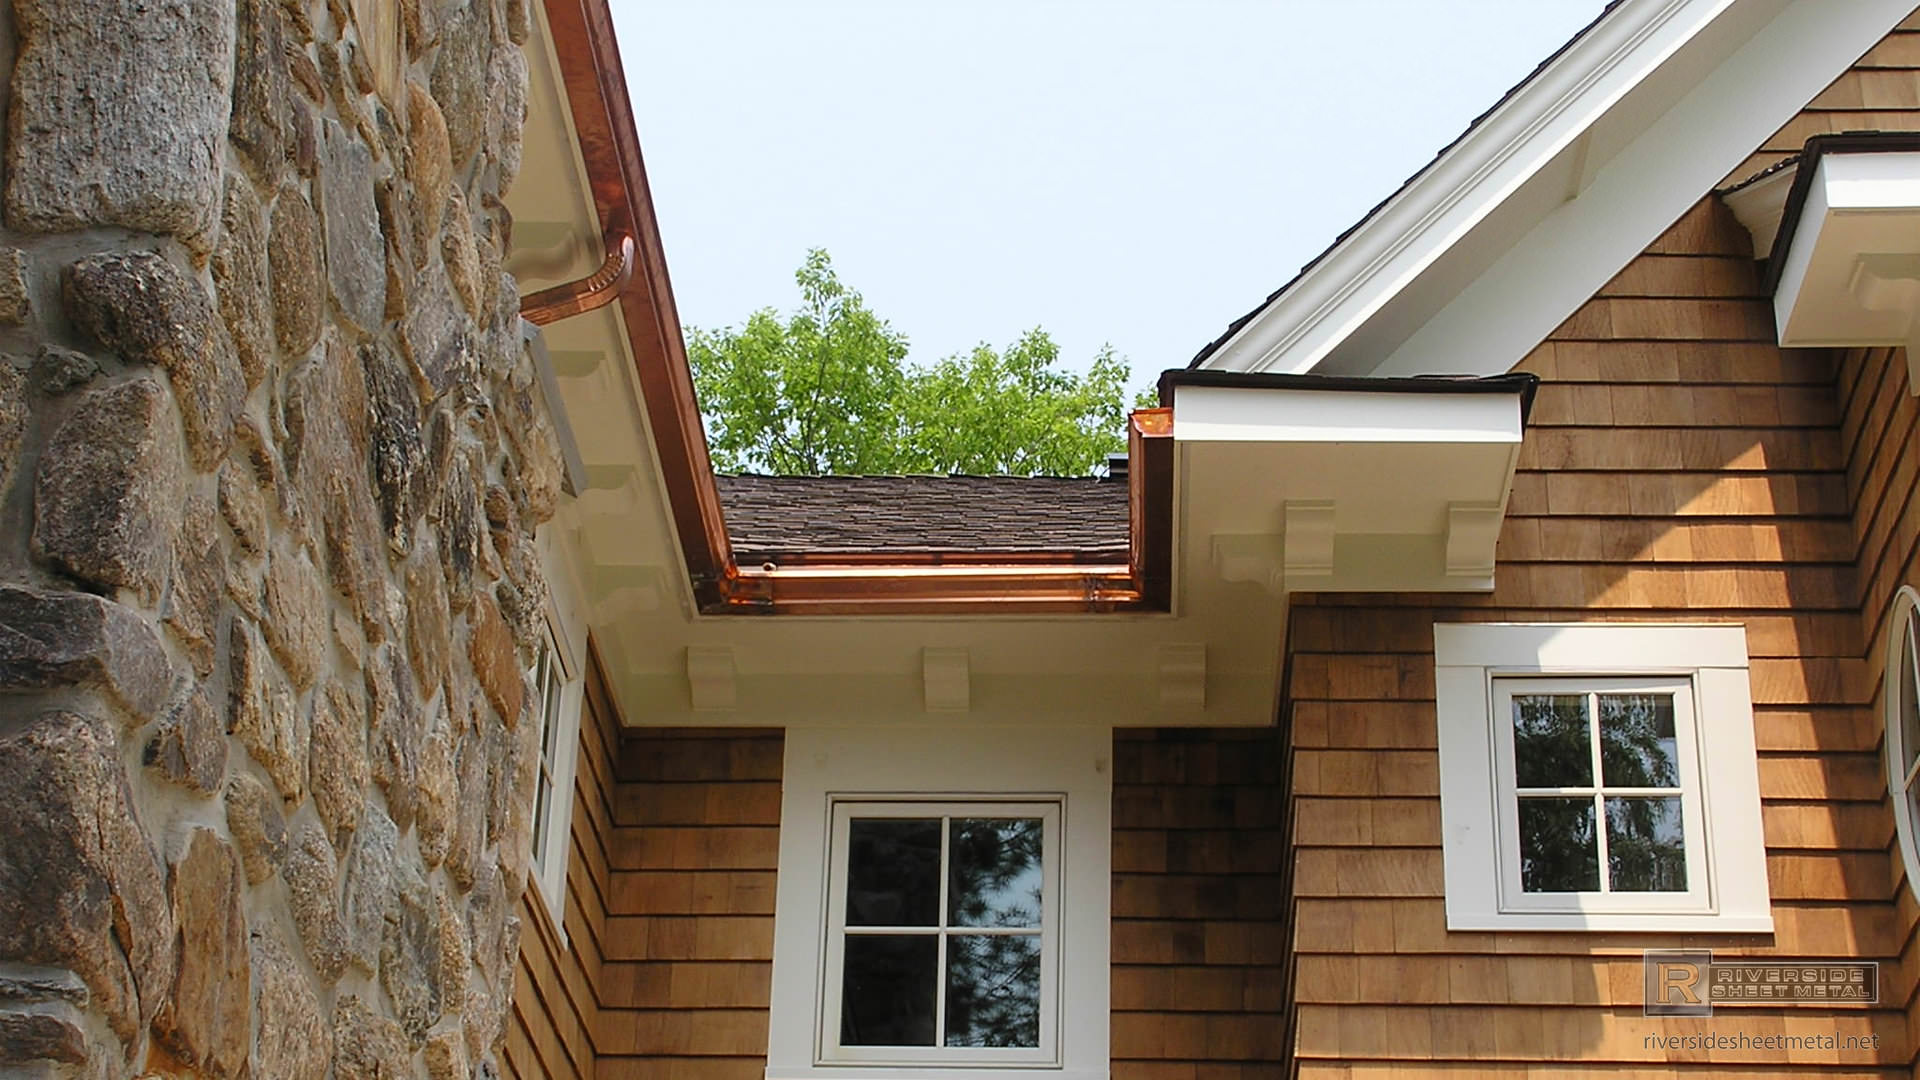 5-inches-copper-k-style-gutter-installat